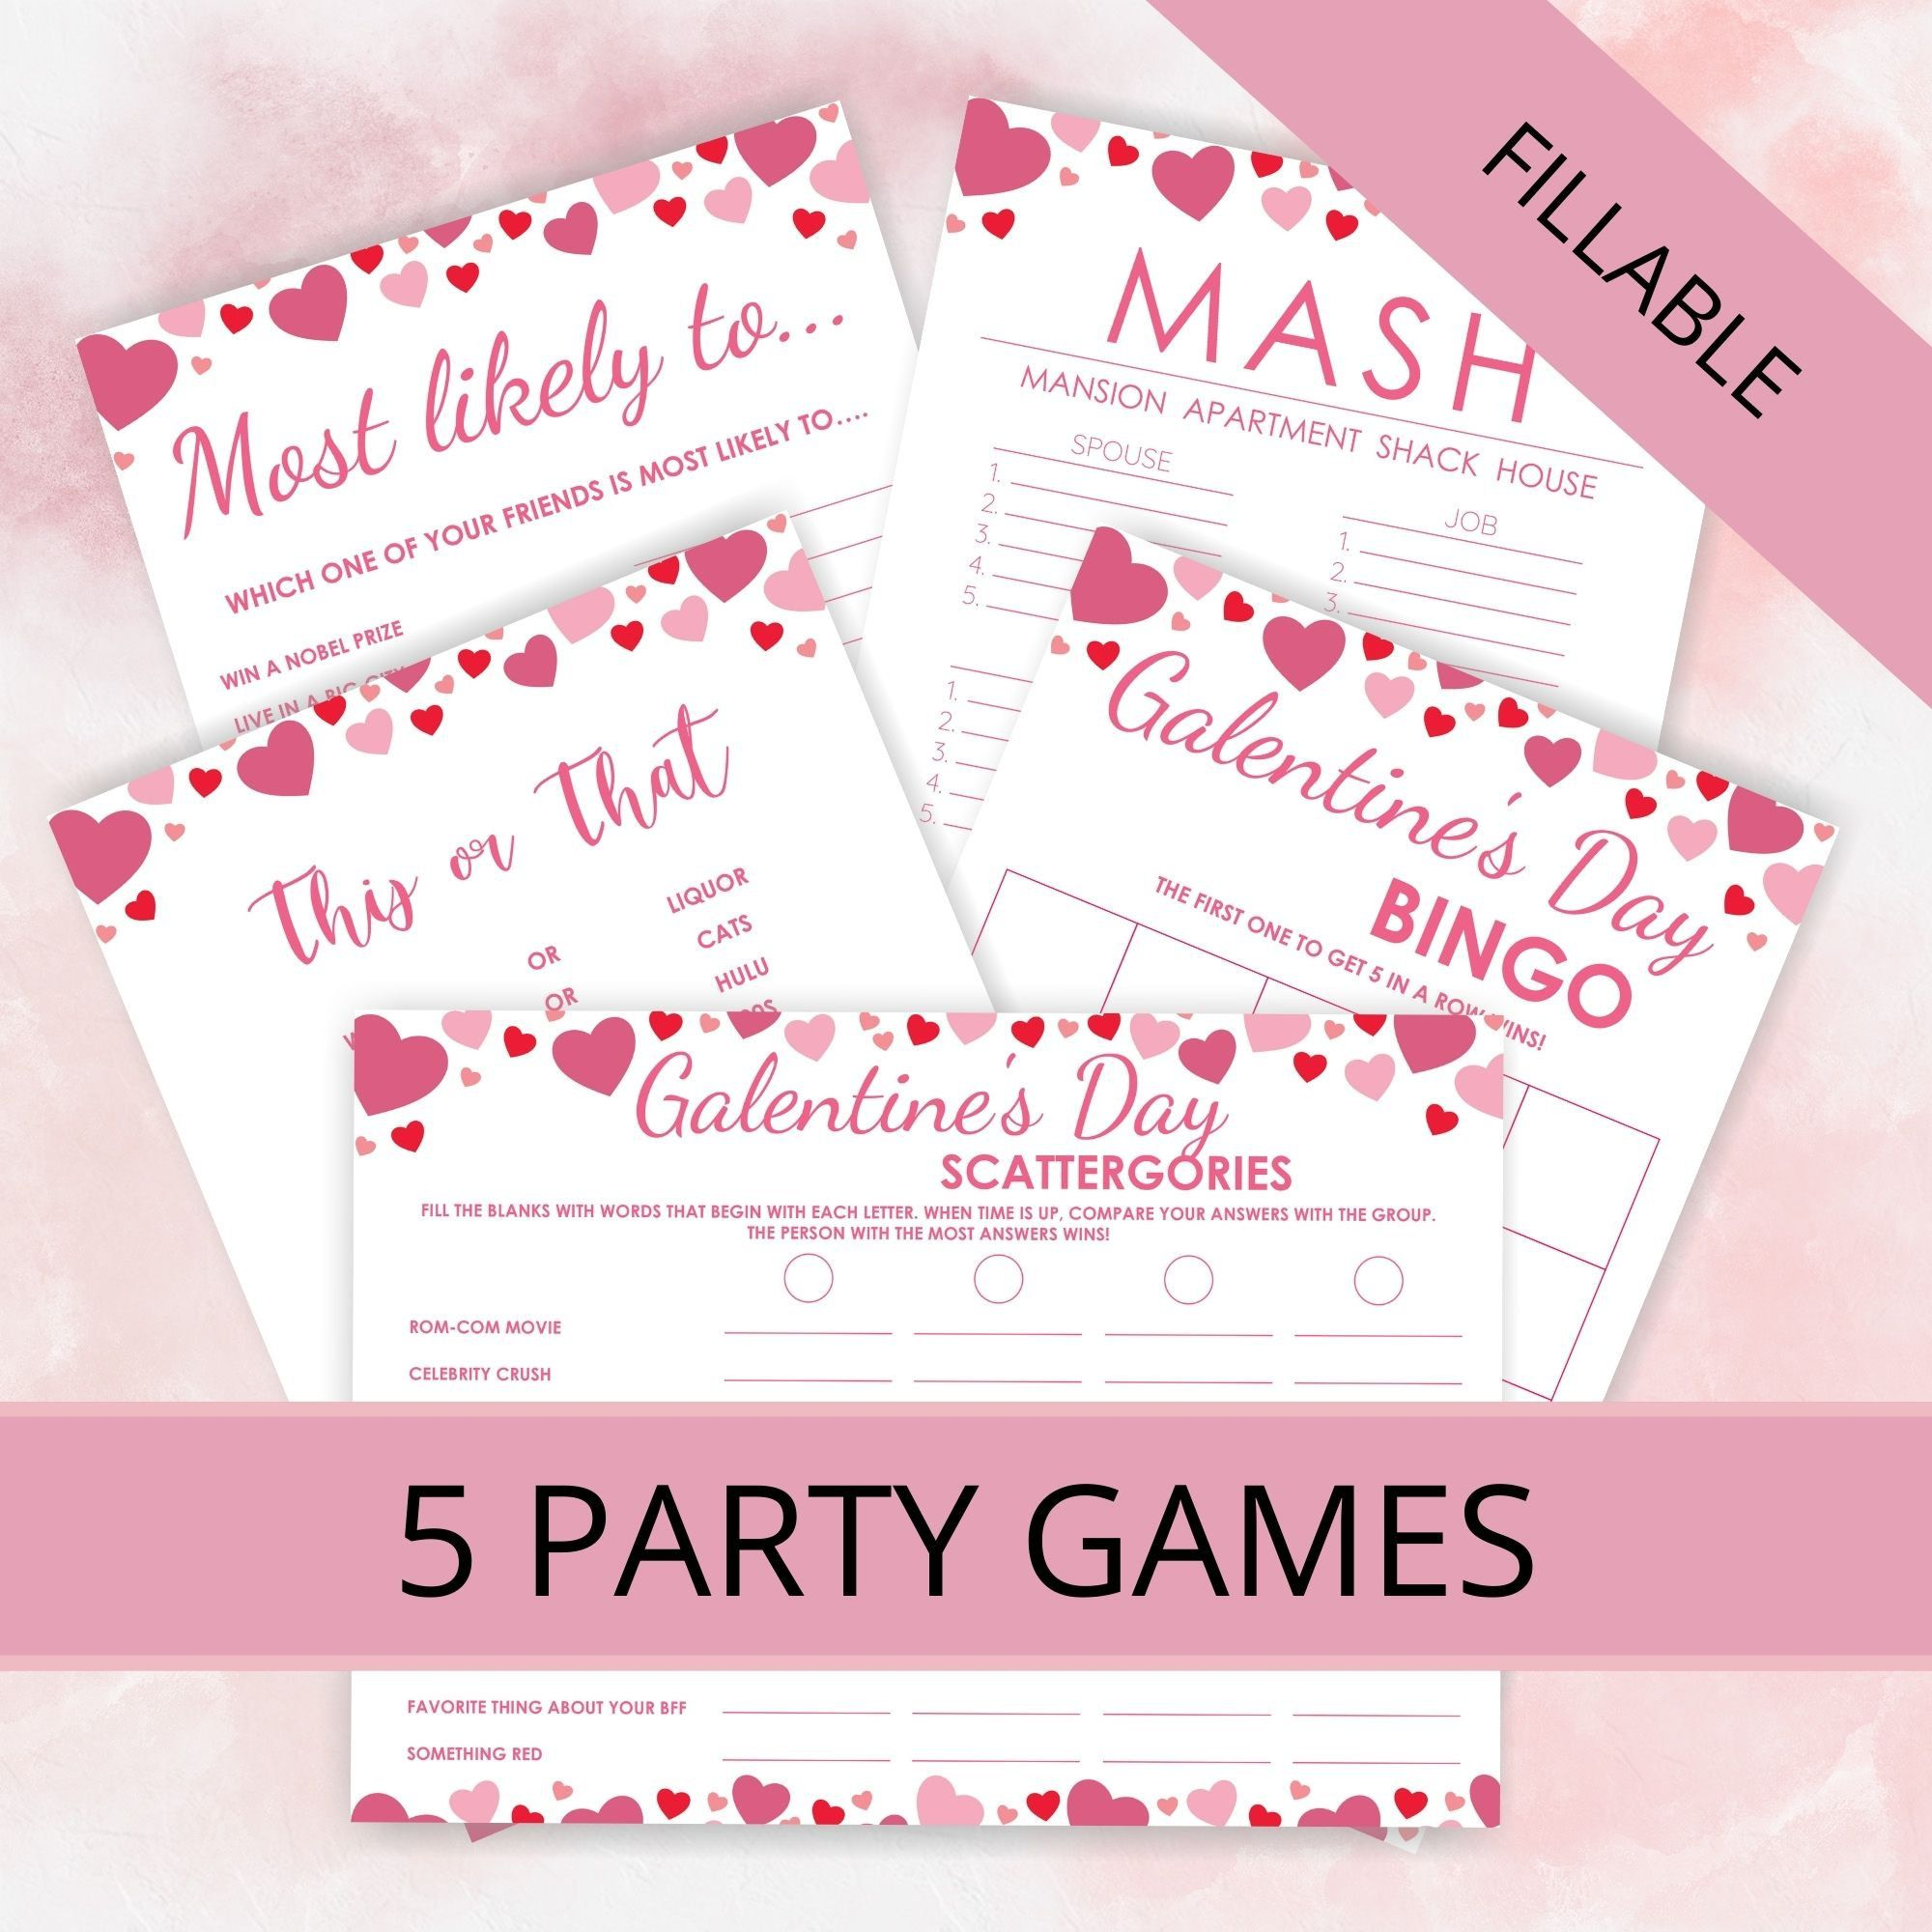 Galentine S Day Game Bundle Fillable Galentines Party Etsy In 2021 Galentines Party Galentines Day Ideas Galentines